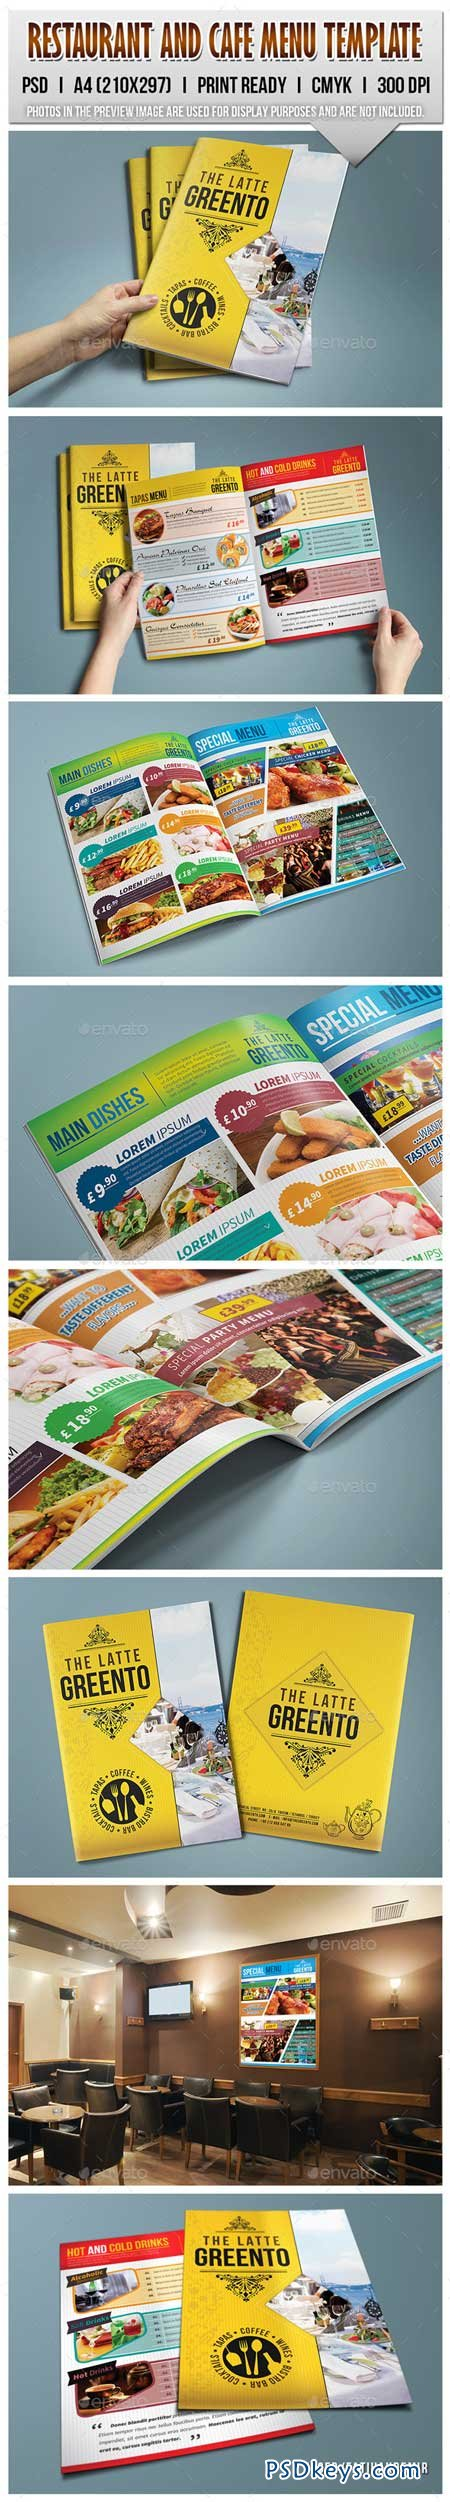 Restaurant and Cafe Menu Template 9060513